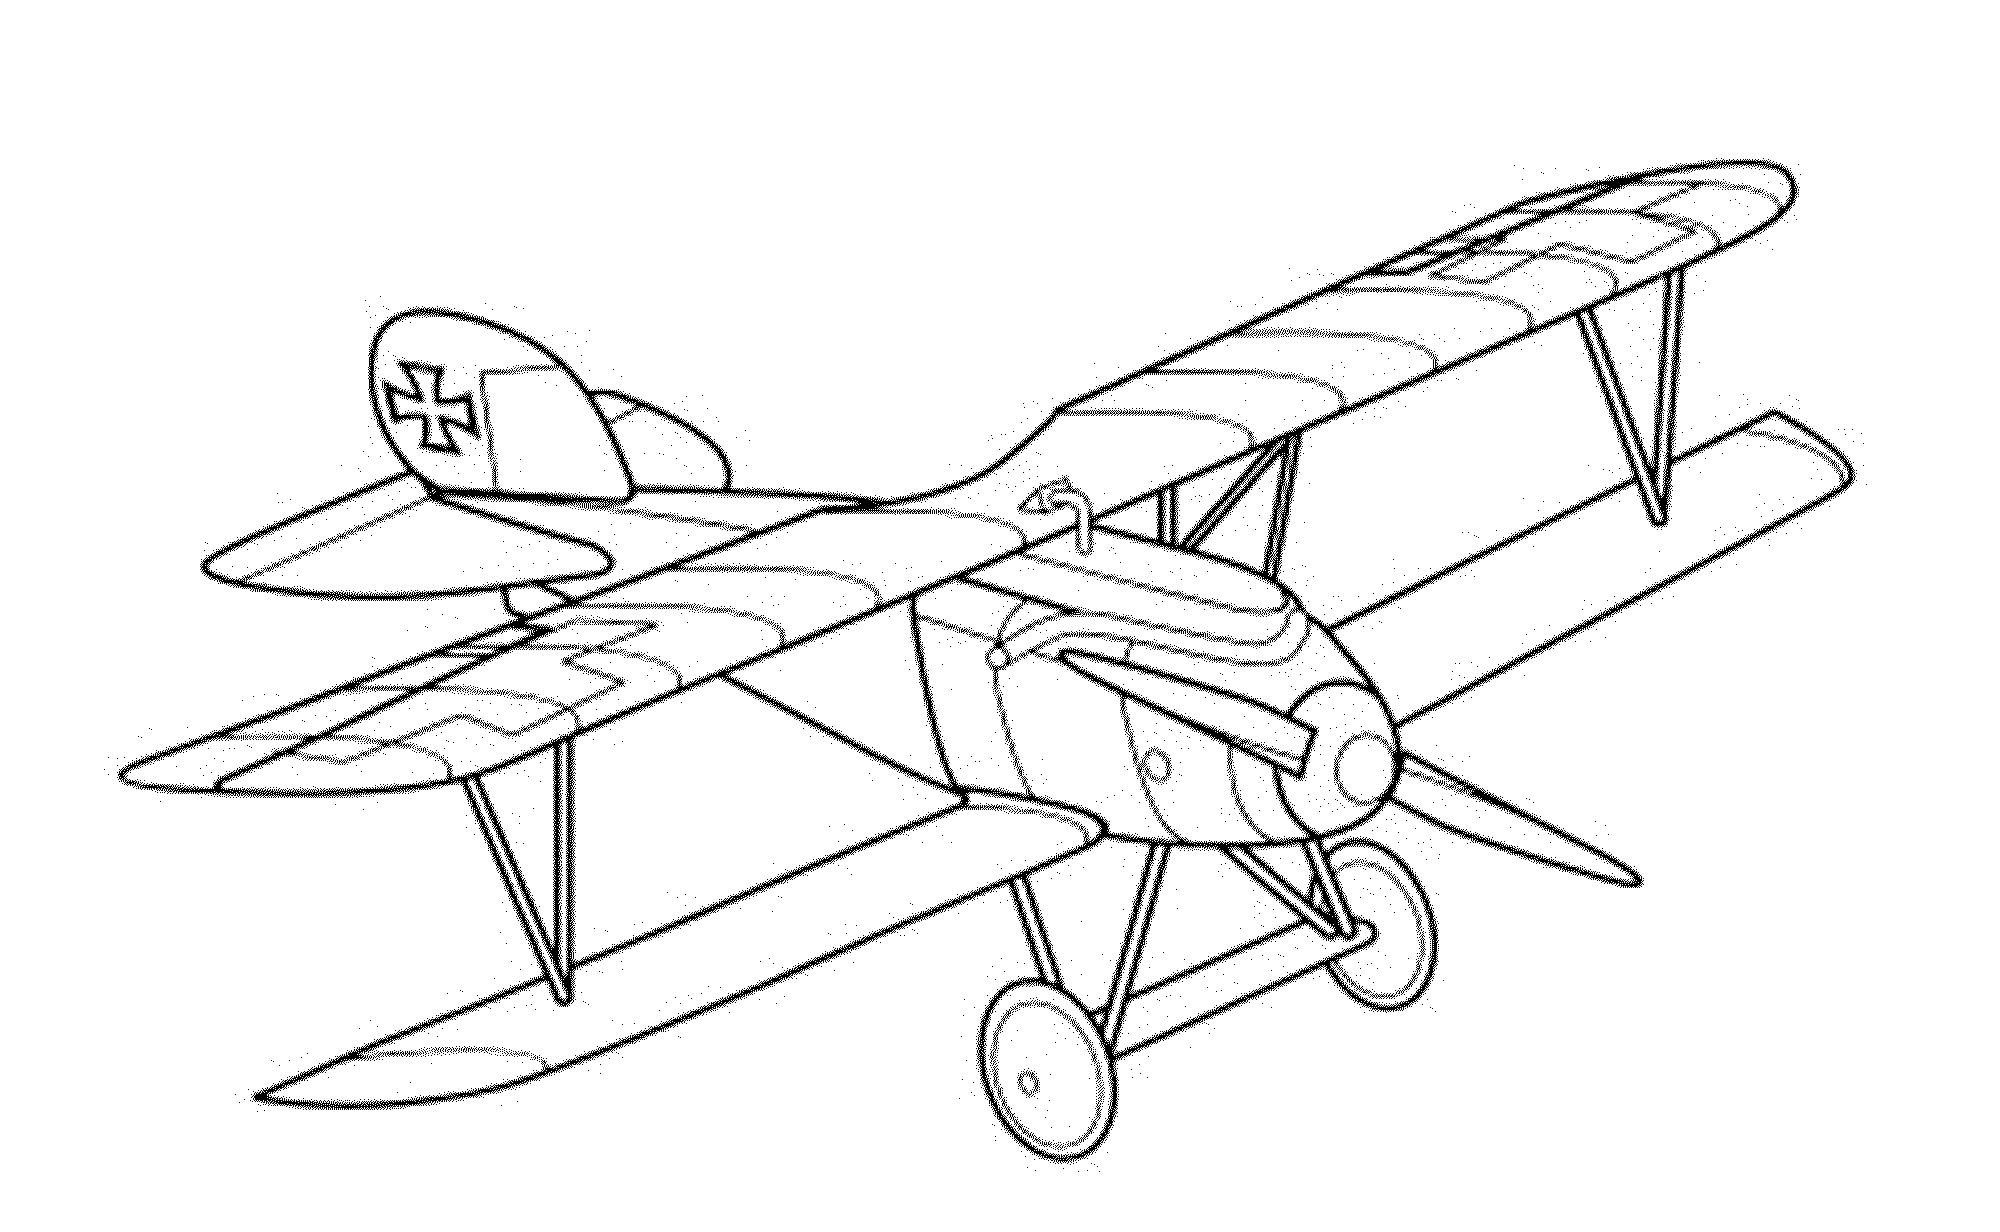 planes coloring pictures airplane outline drawing at getdrawings free download pictures planes coloring